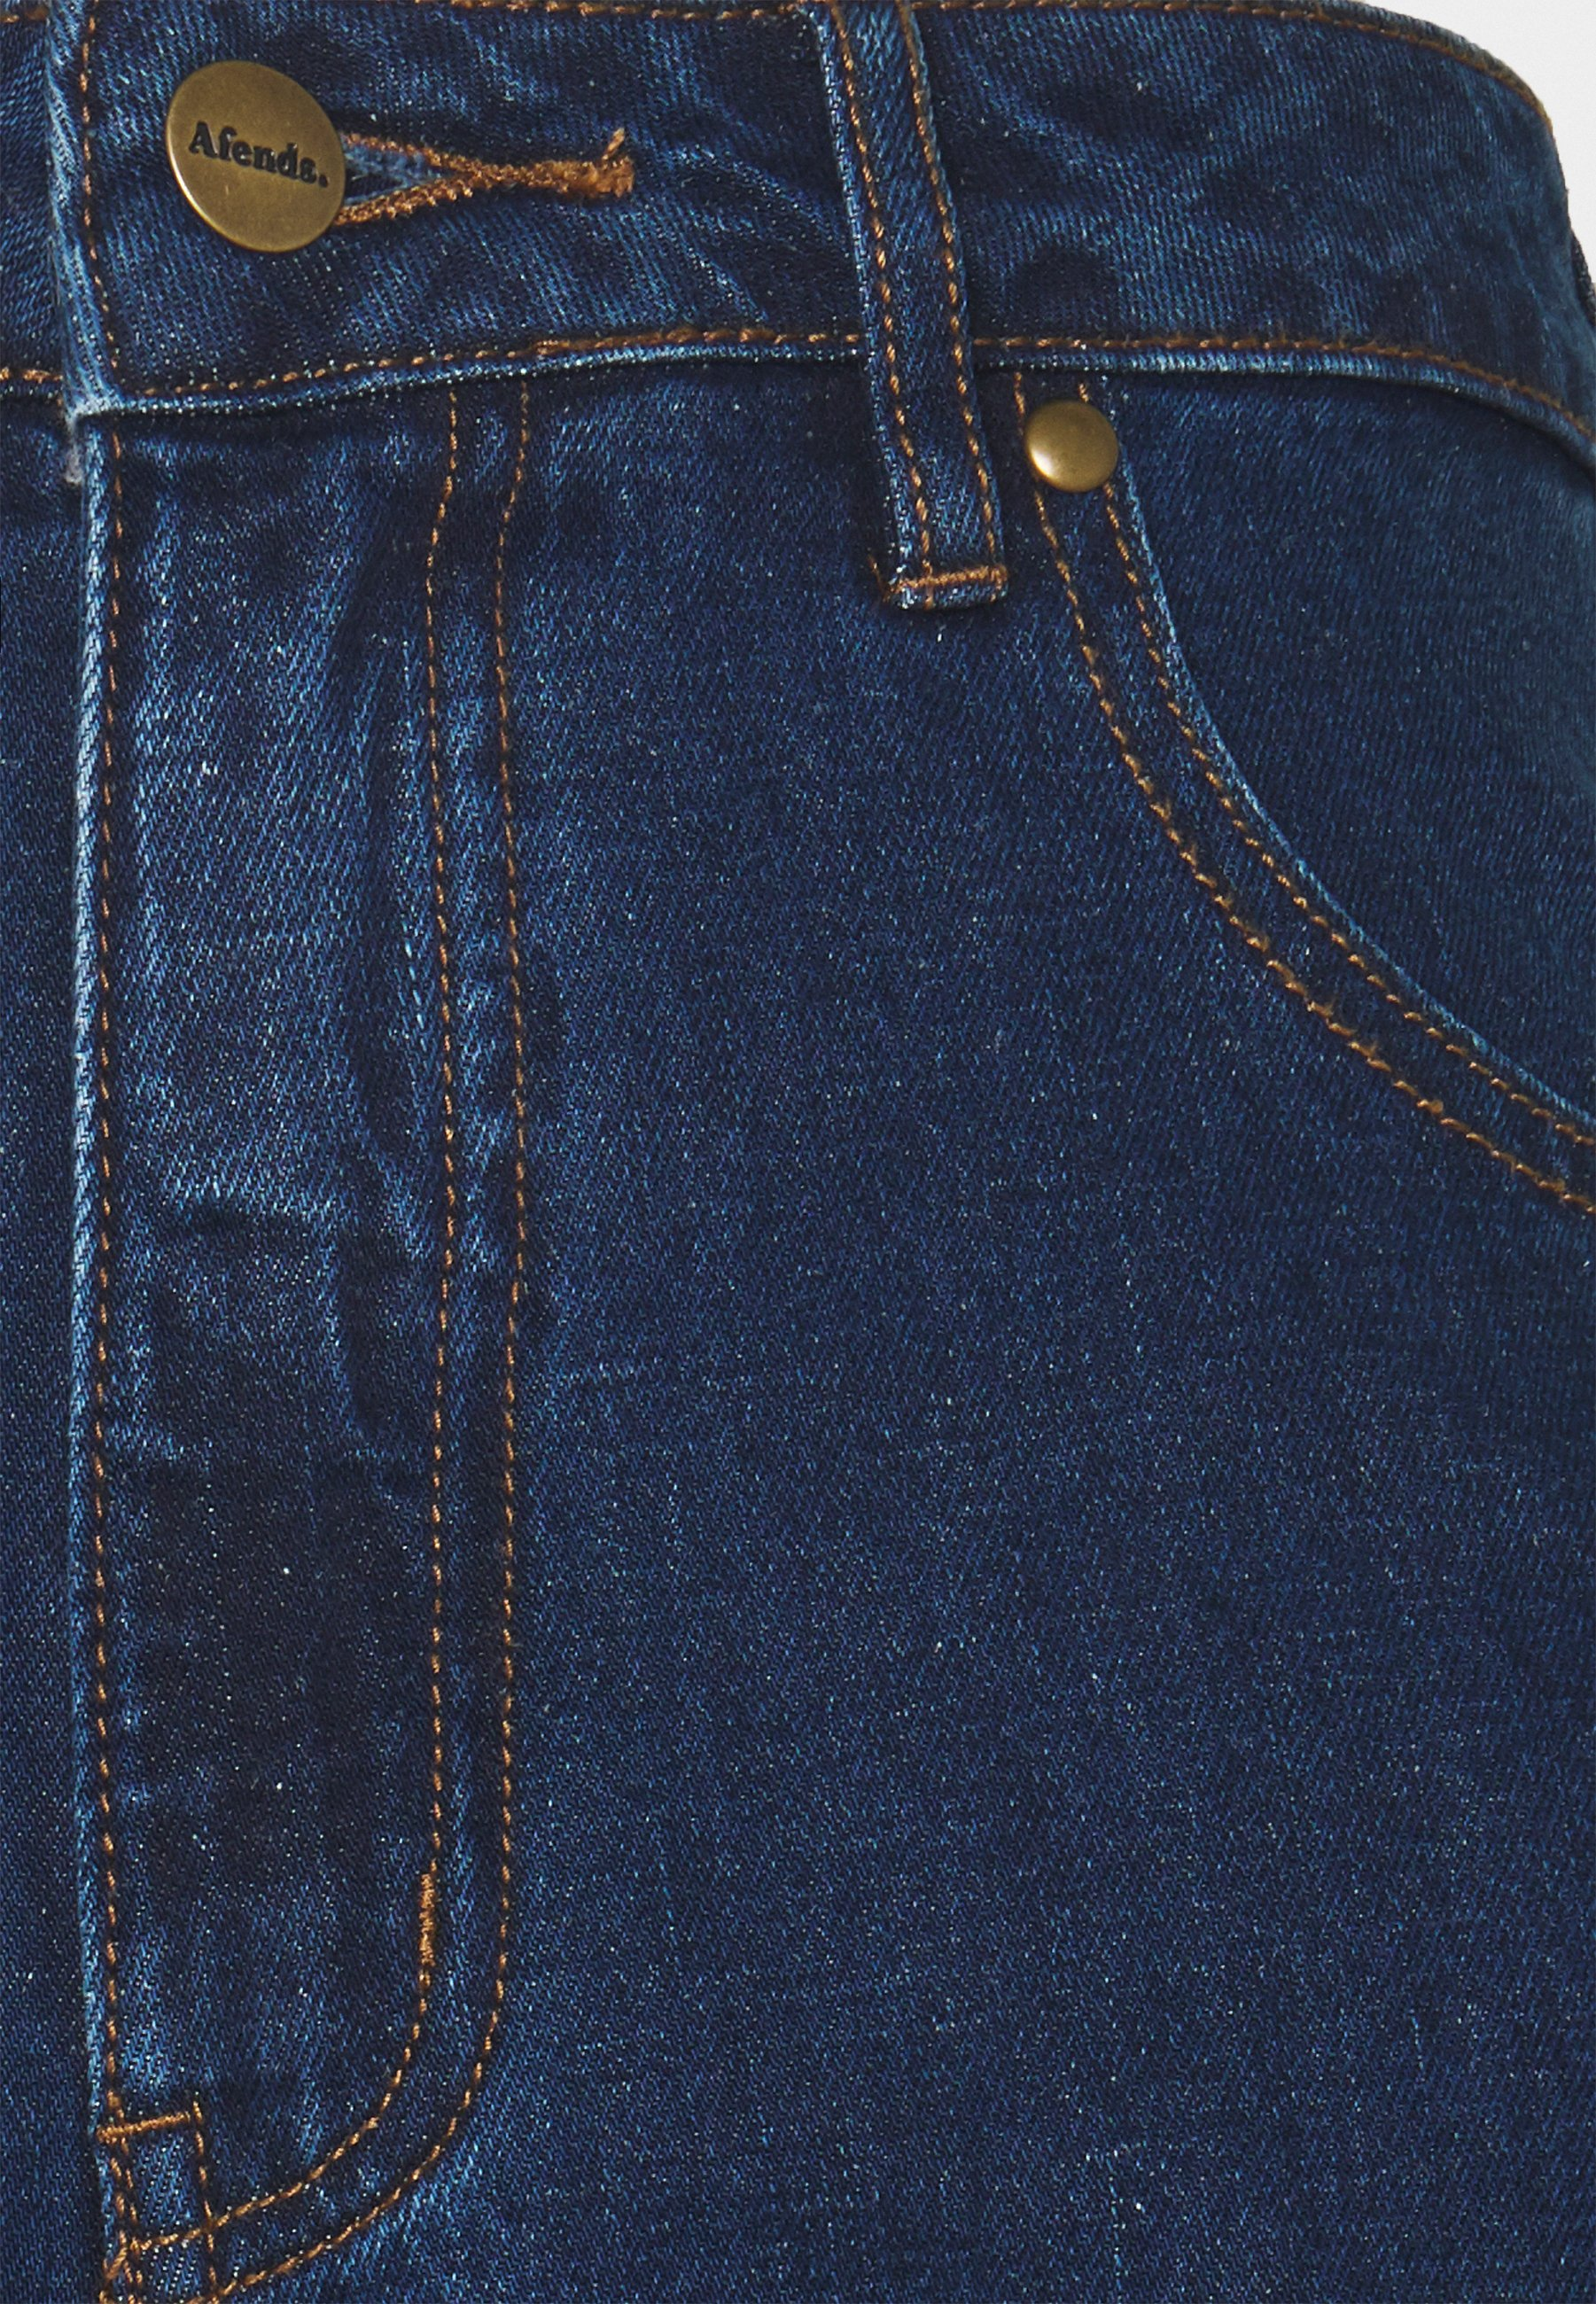 Afends SHELBY - Jean droit - indigo rinse - Jeans Femme 9joeS